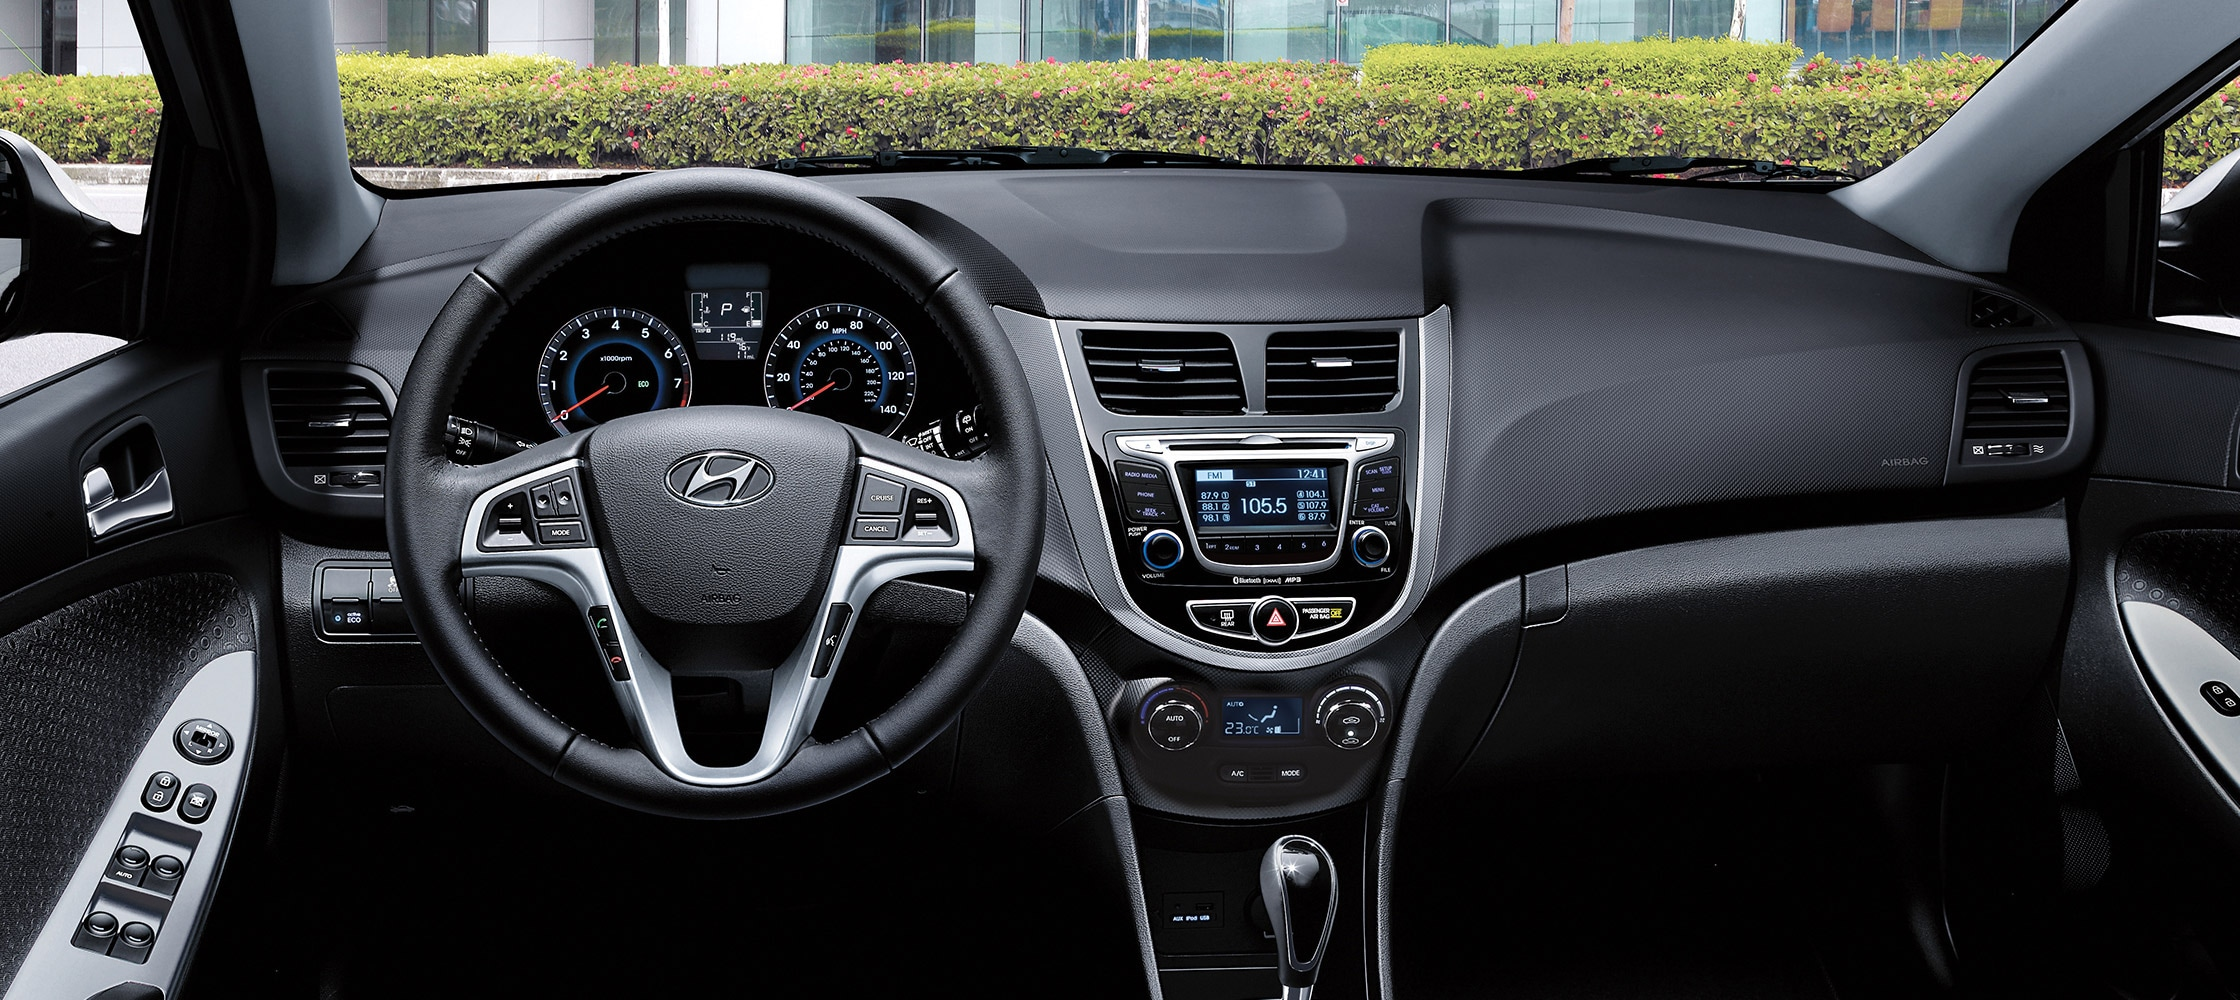 Hyundai Accent Sedan 2017  interior photo of driver's space with steering wheel and dashboard